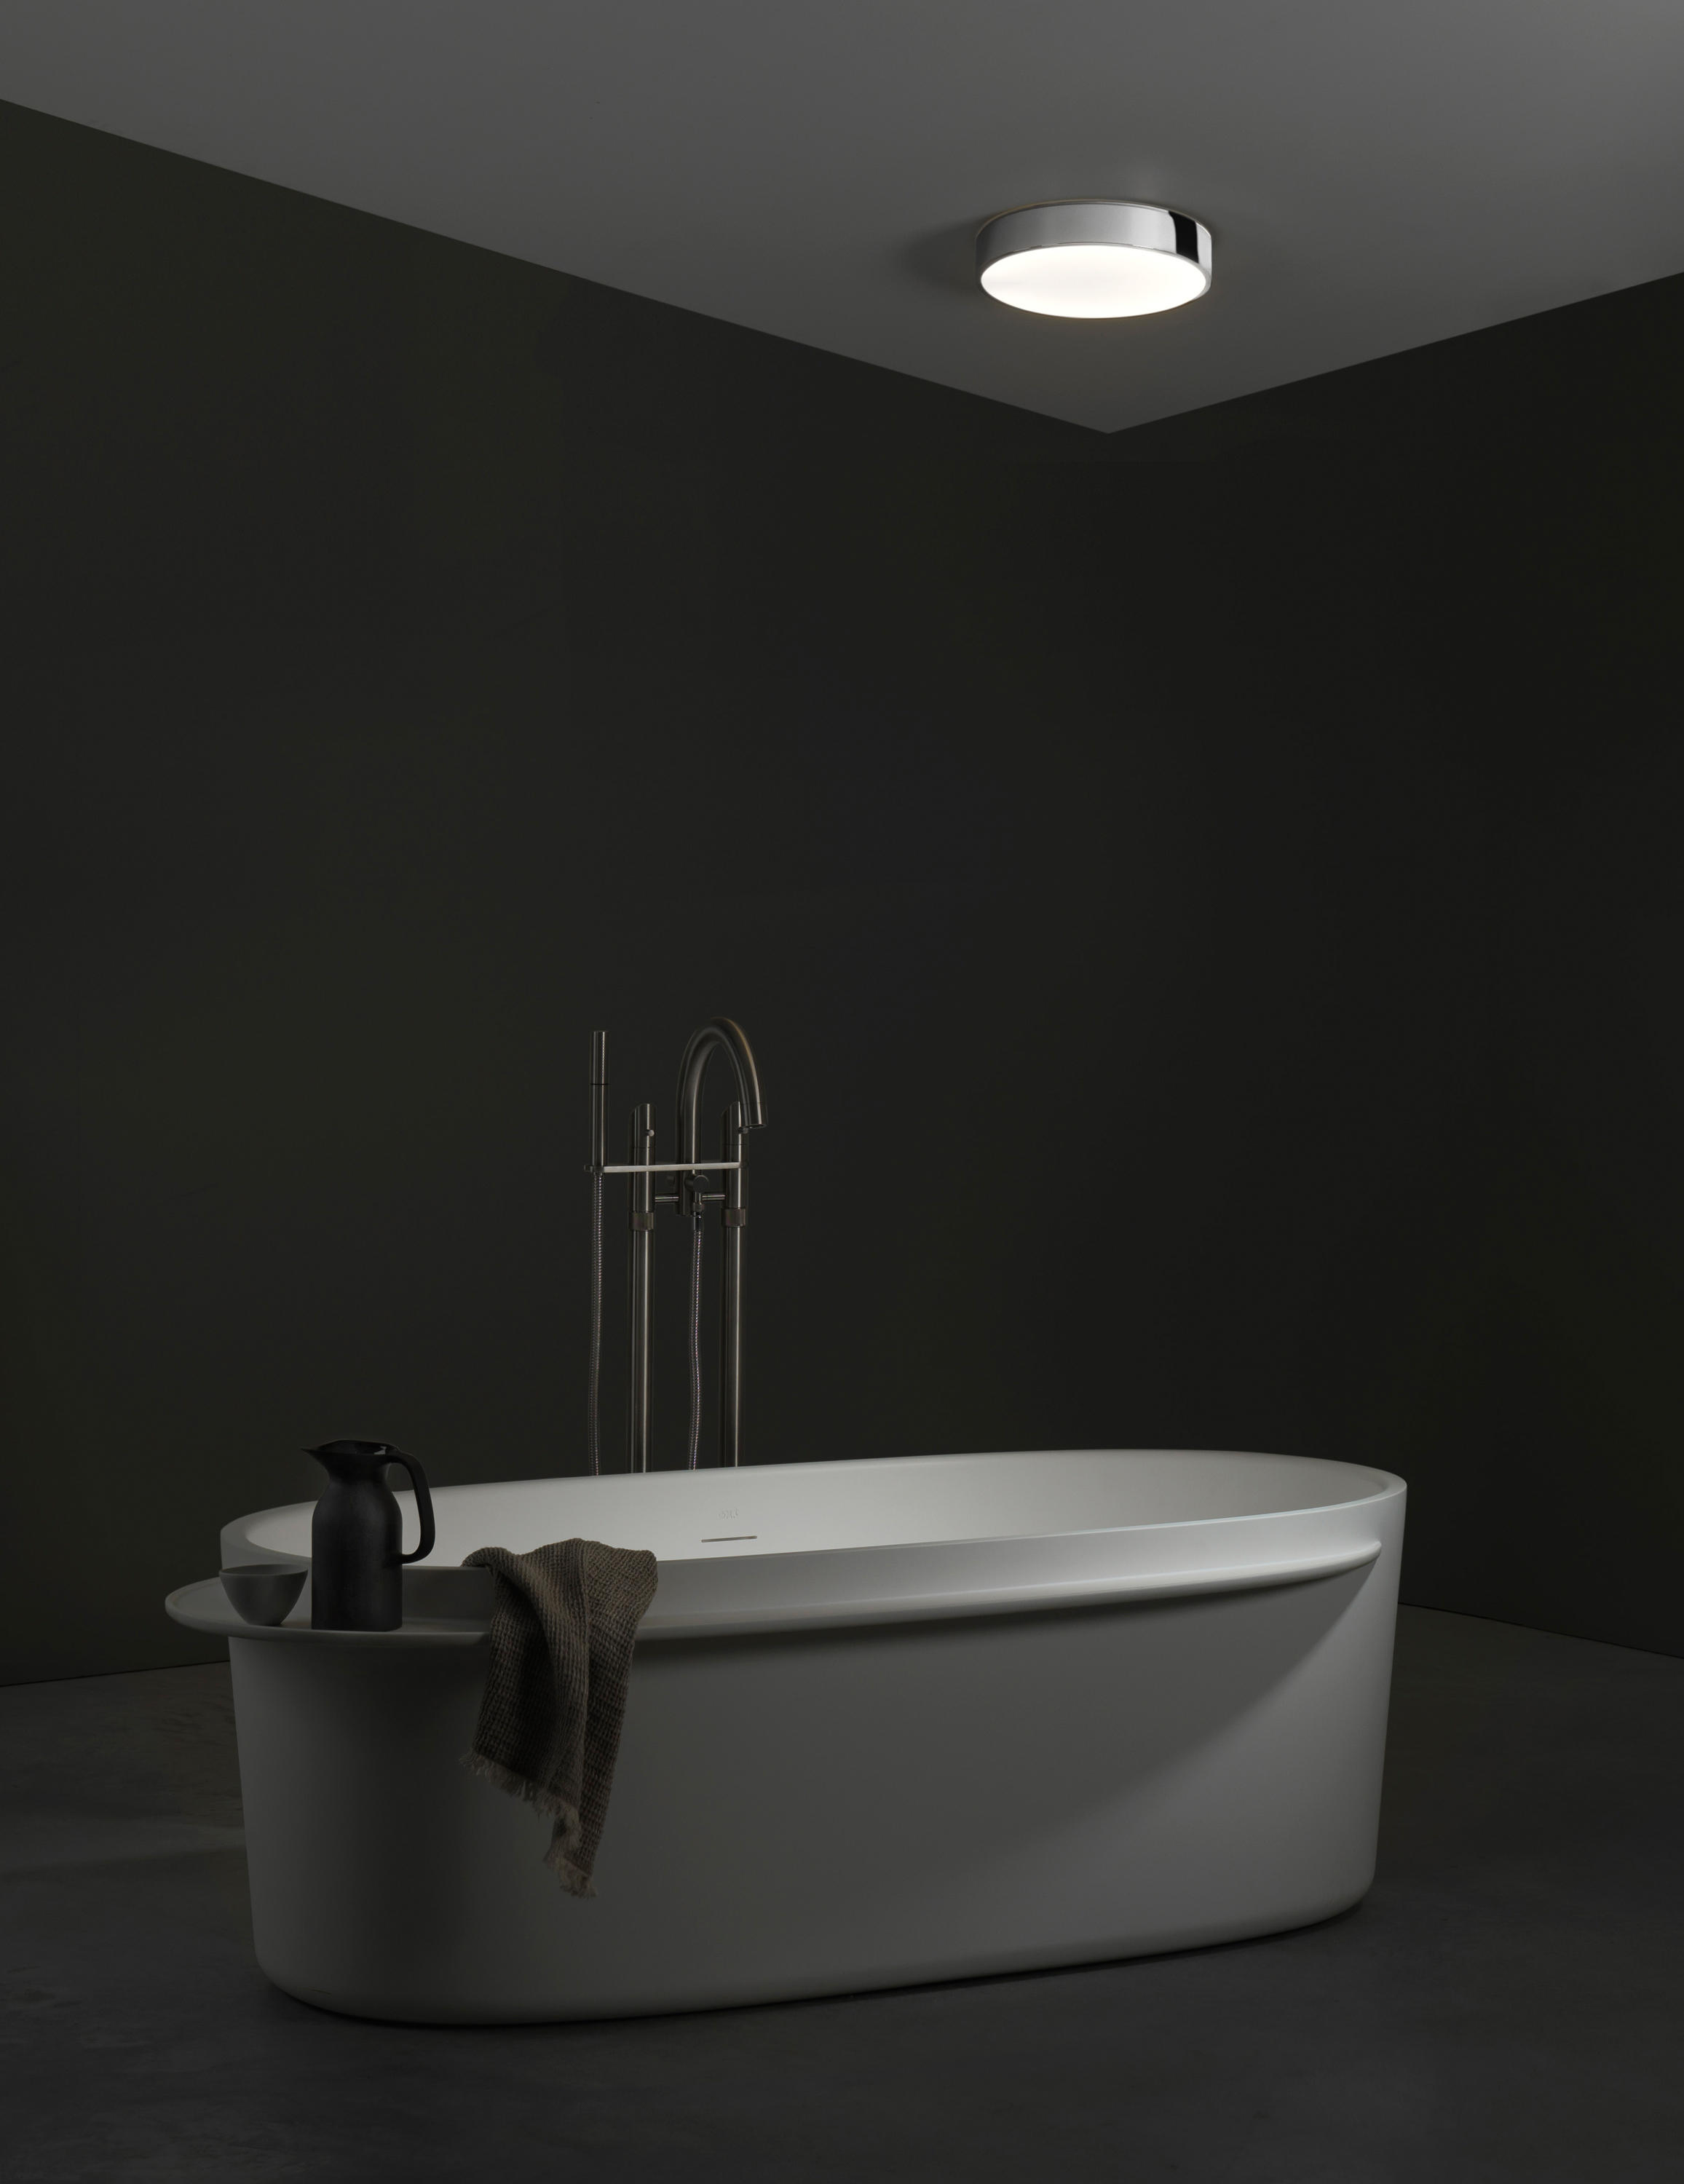 mallon led general lighting from astro lighting architonic. Black Bedroom Furniture Sets. Home Design Ideas